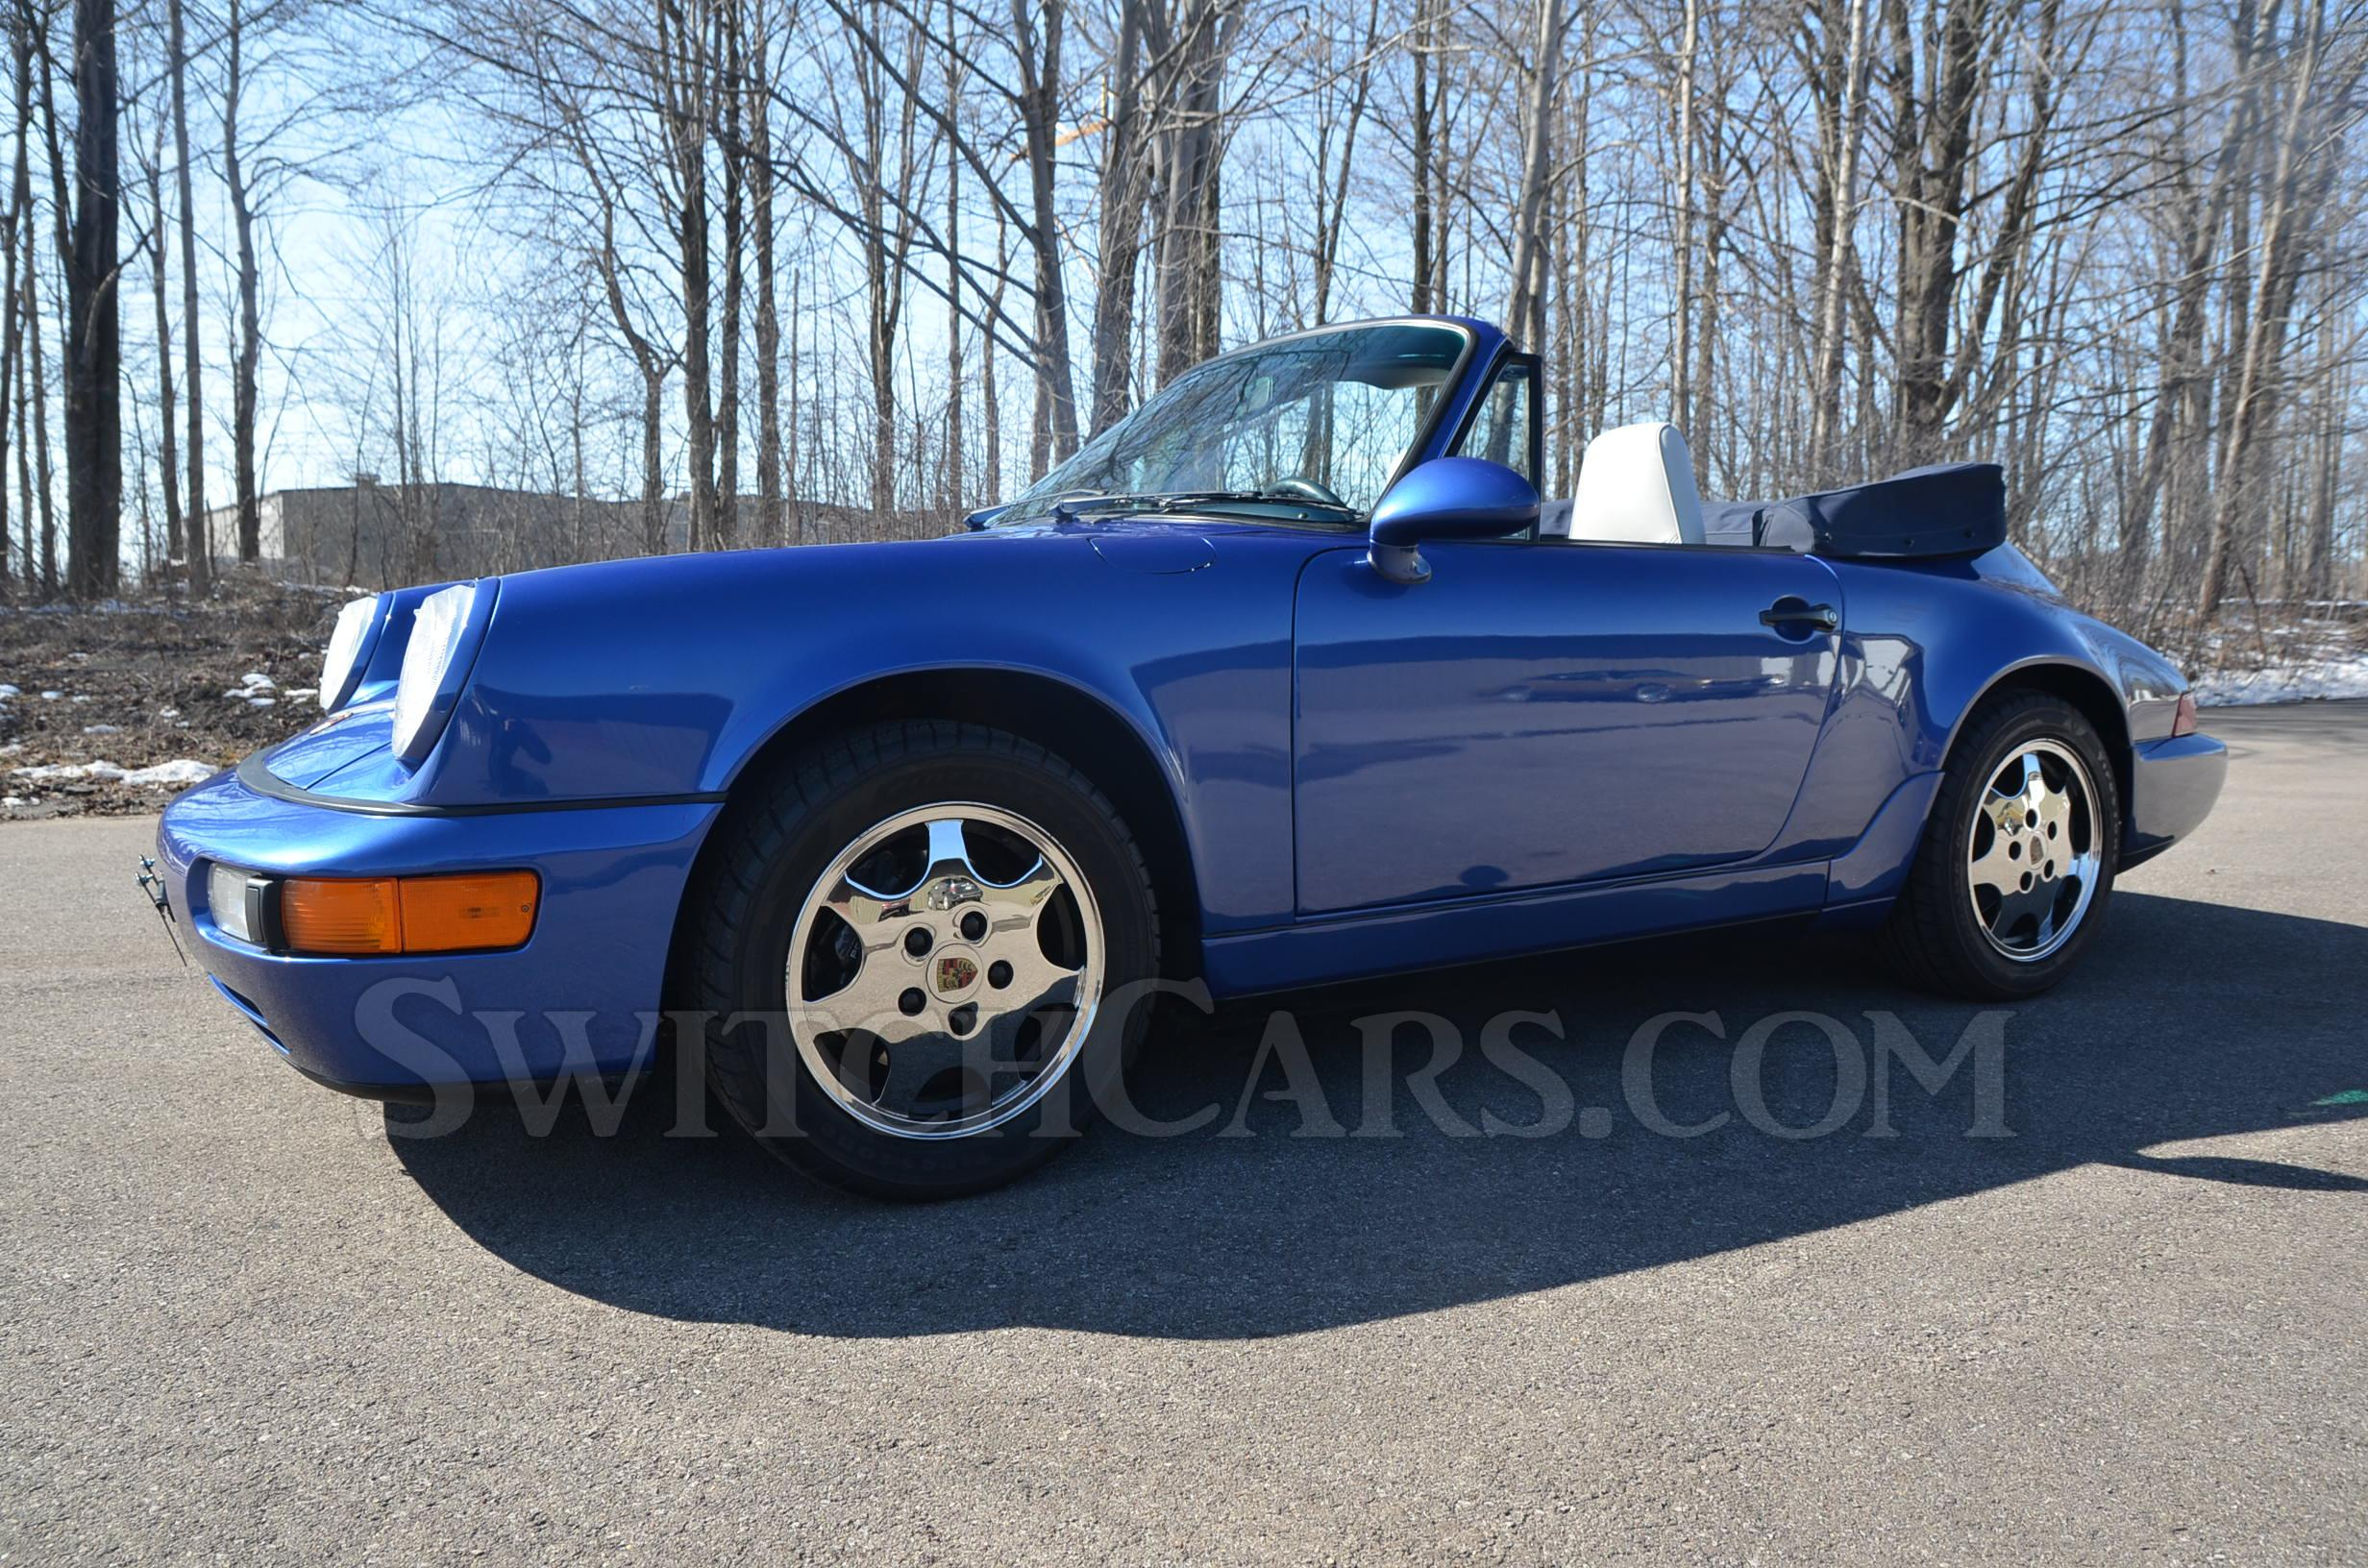 1992 Porsche 911 Carrera 4 Cabriolet at Switchcars Inc Sold